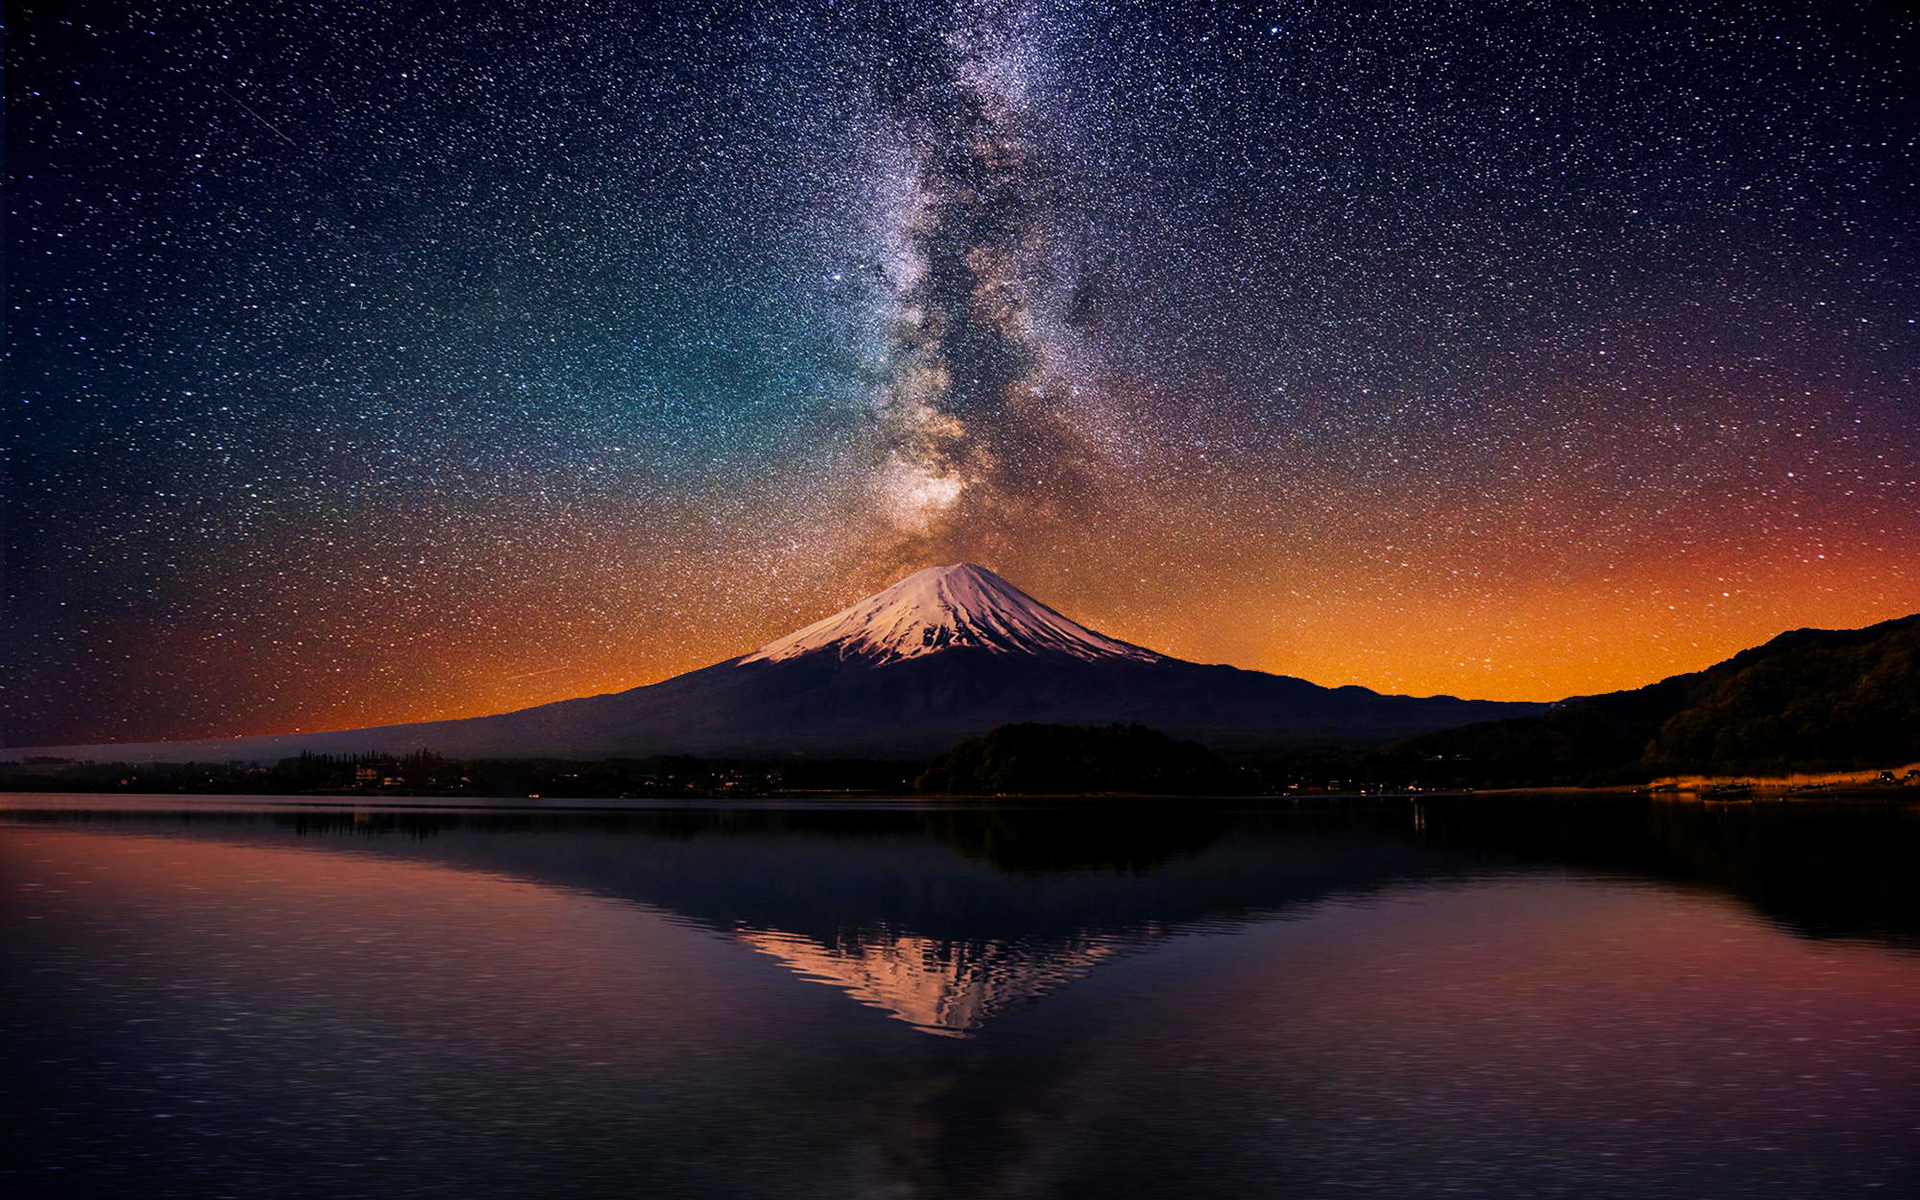 Amazing Milky Way Wallpapers: 10 Mesmerizing HD Images Of The Milky Way